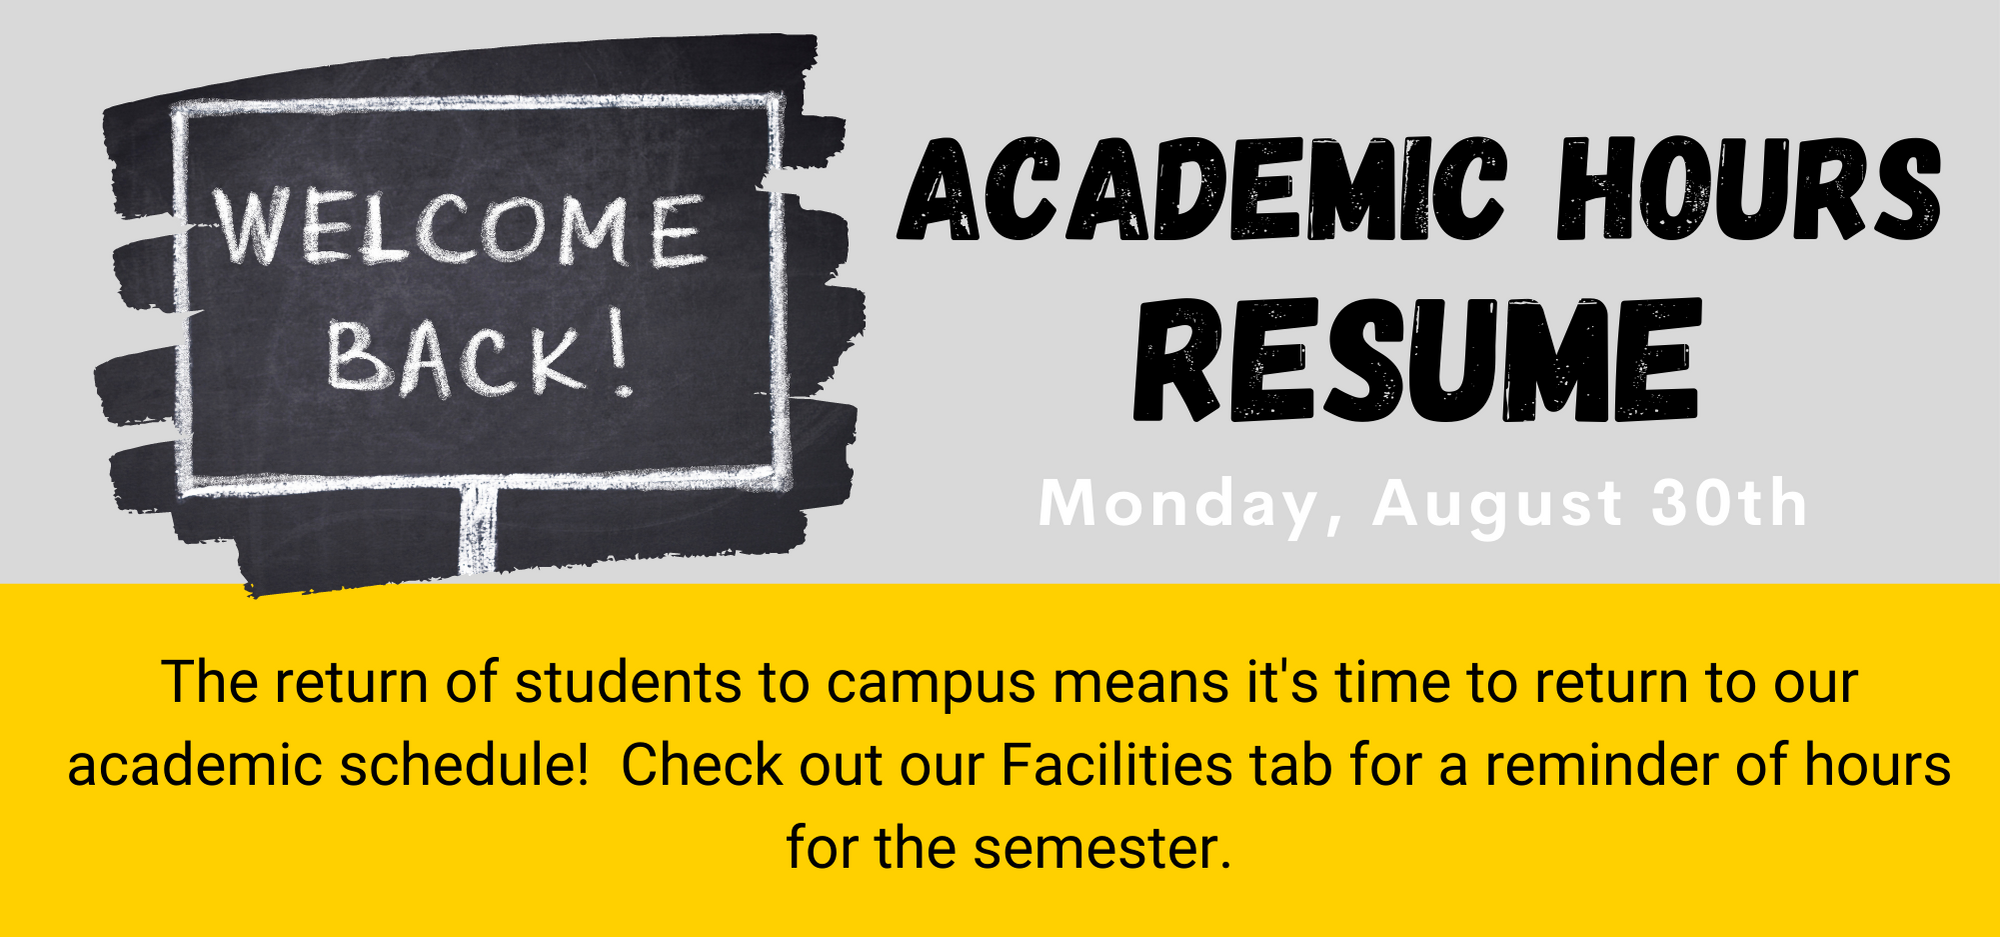 a academic hours resume flyer